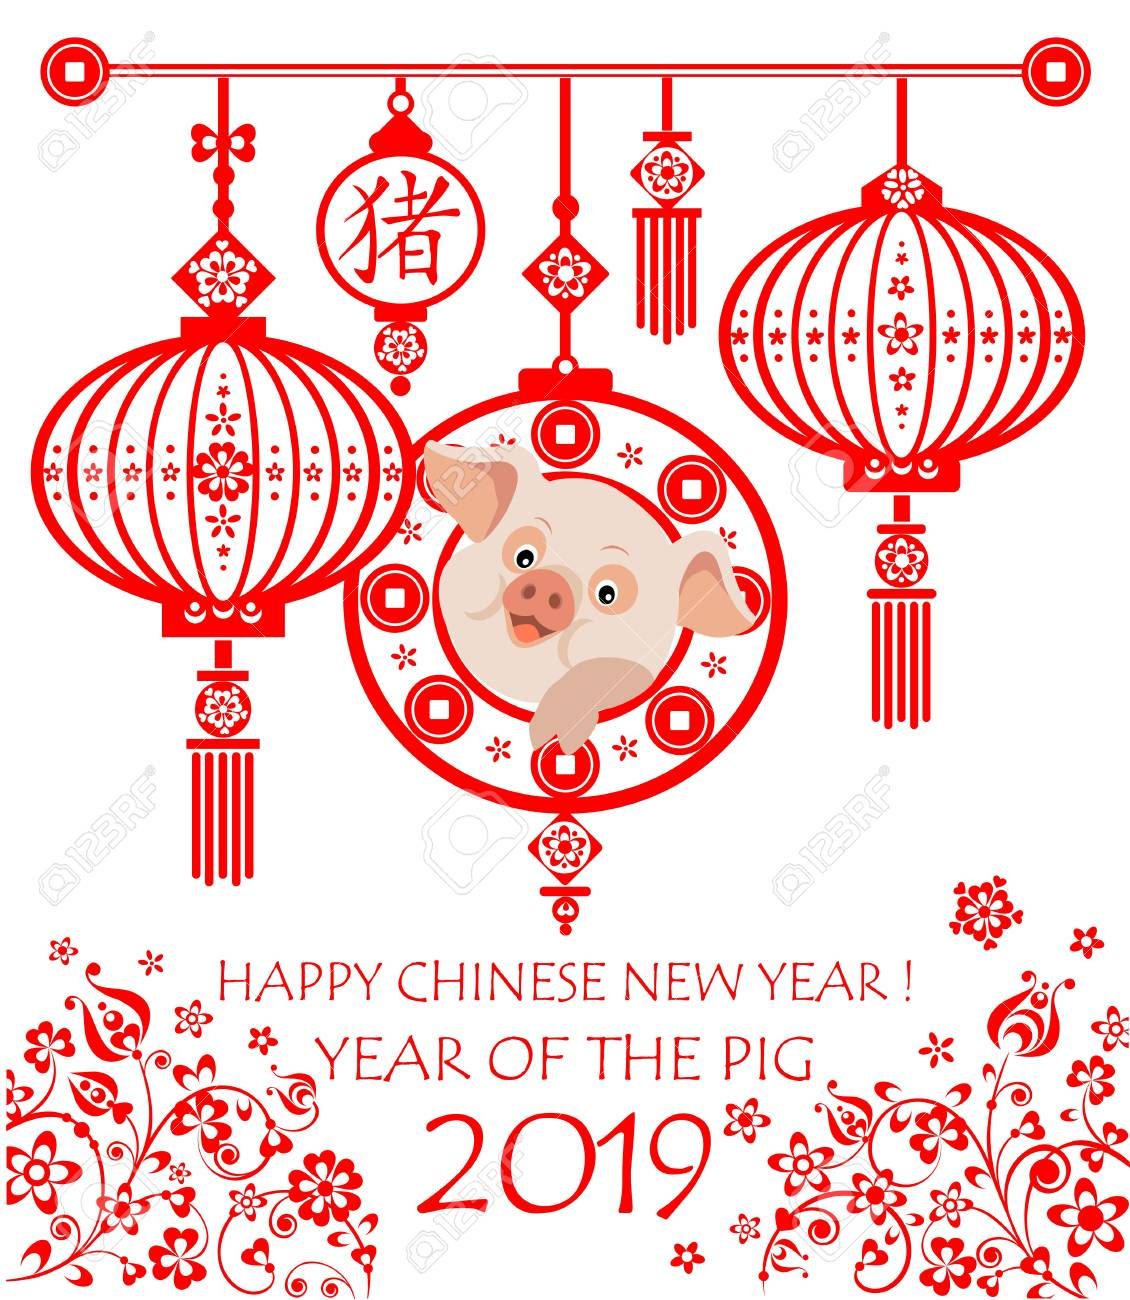 Greeting Card For 2019 Chinese New Year With Funny Little Pigs